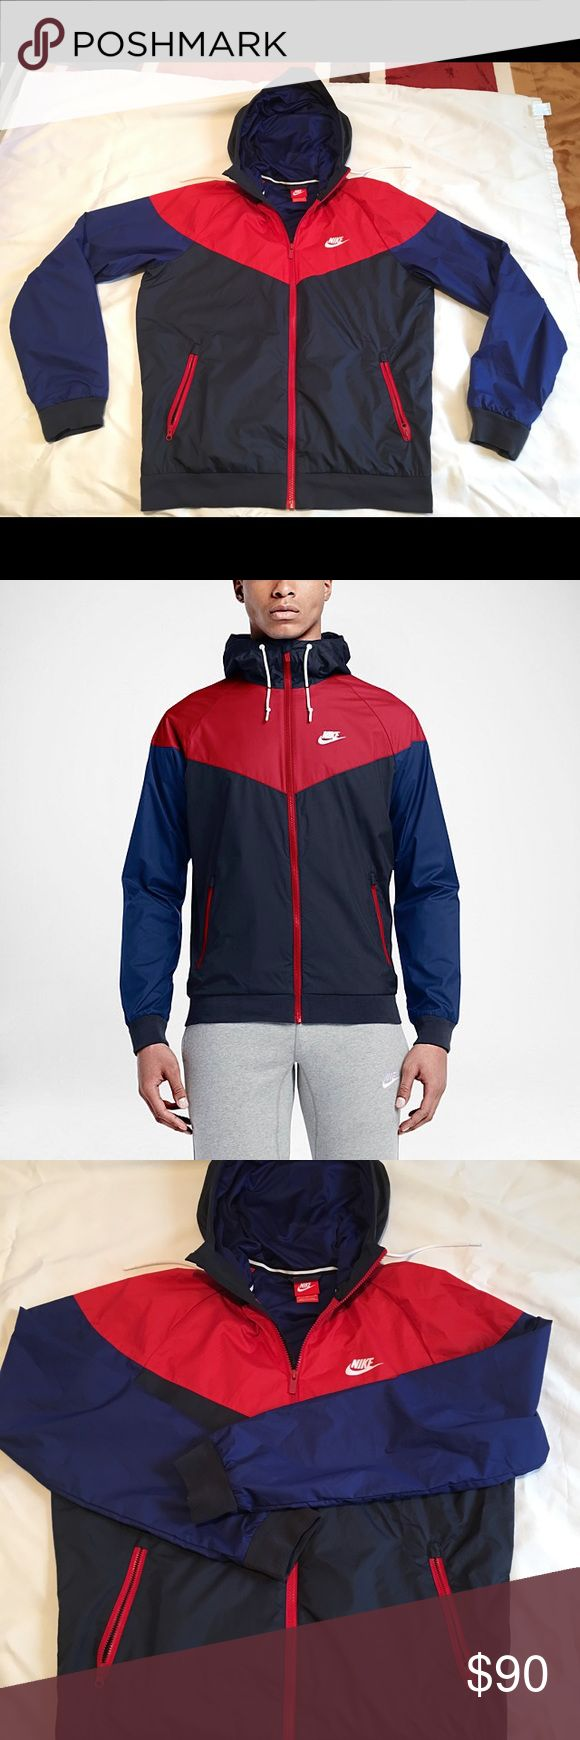 Nike men's sportswear windrunner jacket sz M red Nike men's sportswear windrunner jacket size Medium. red, blue. In excellent pre- owned condition. Worn twice. Like new!  Thanks for looking! Nike Jackets & Coats Windbreakers